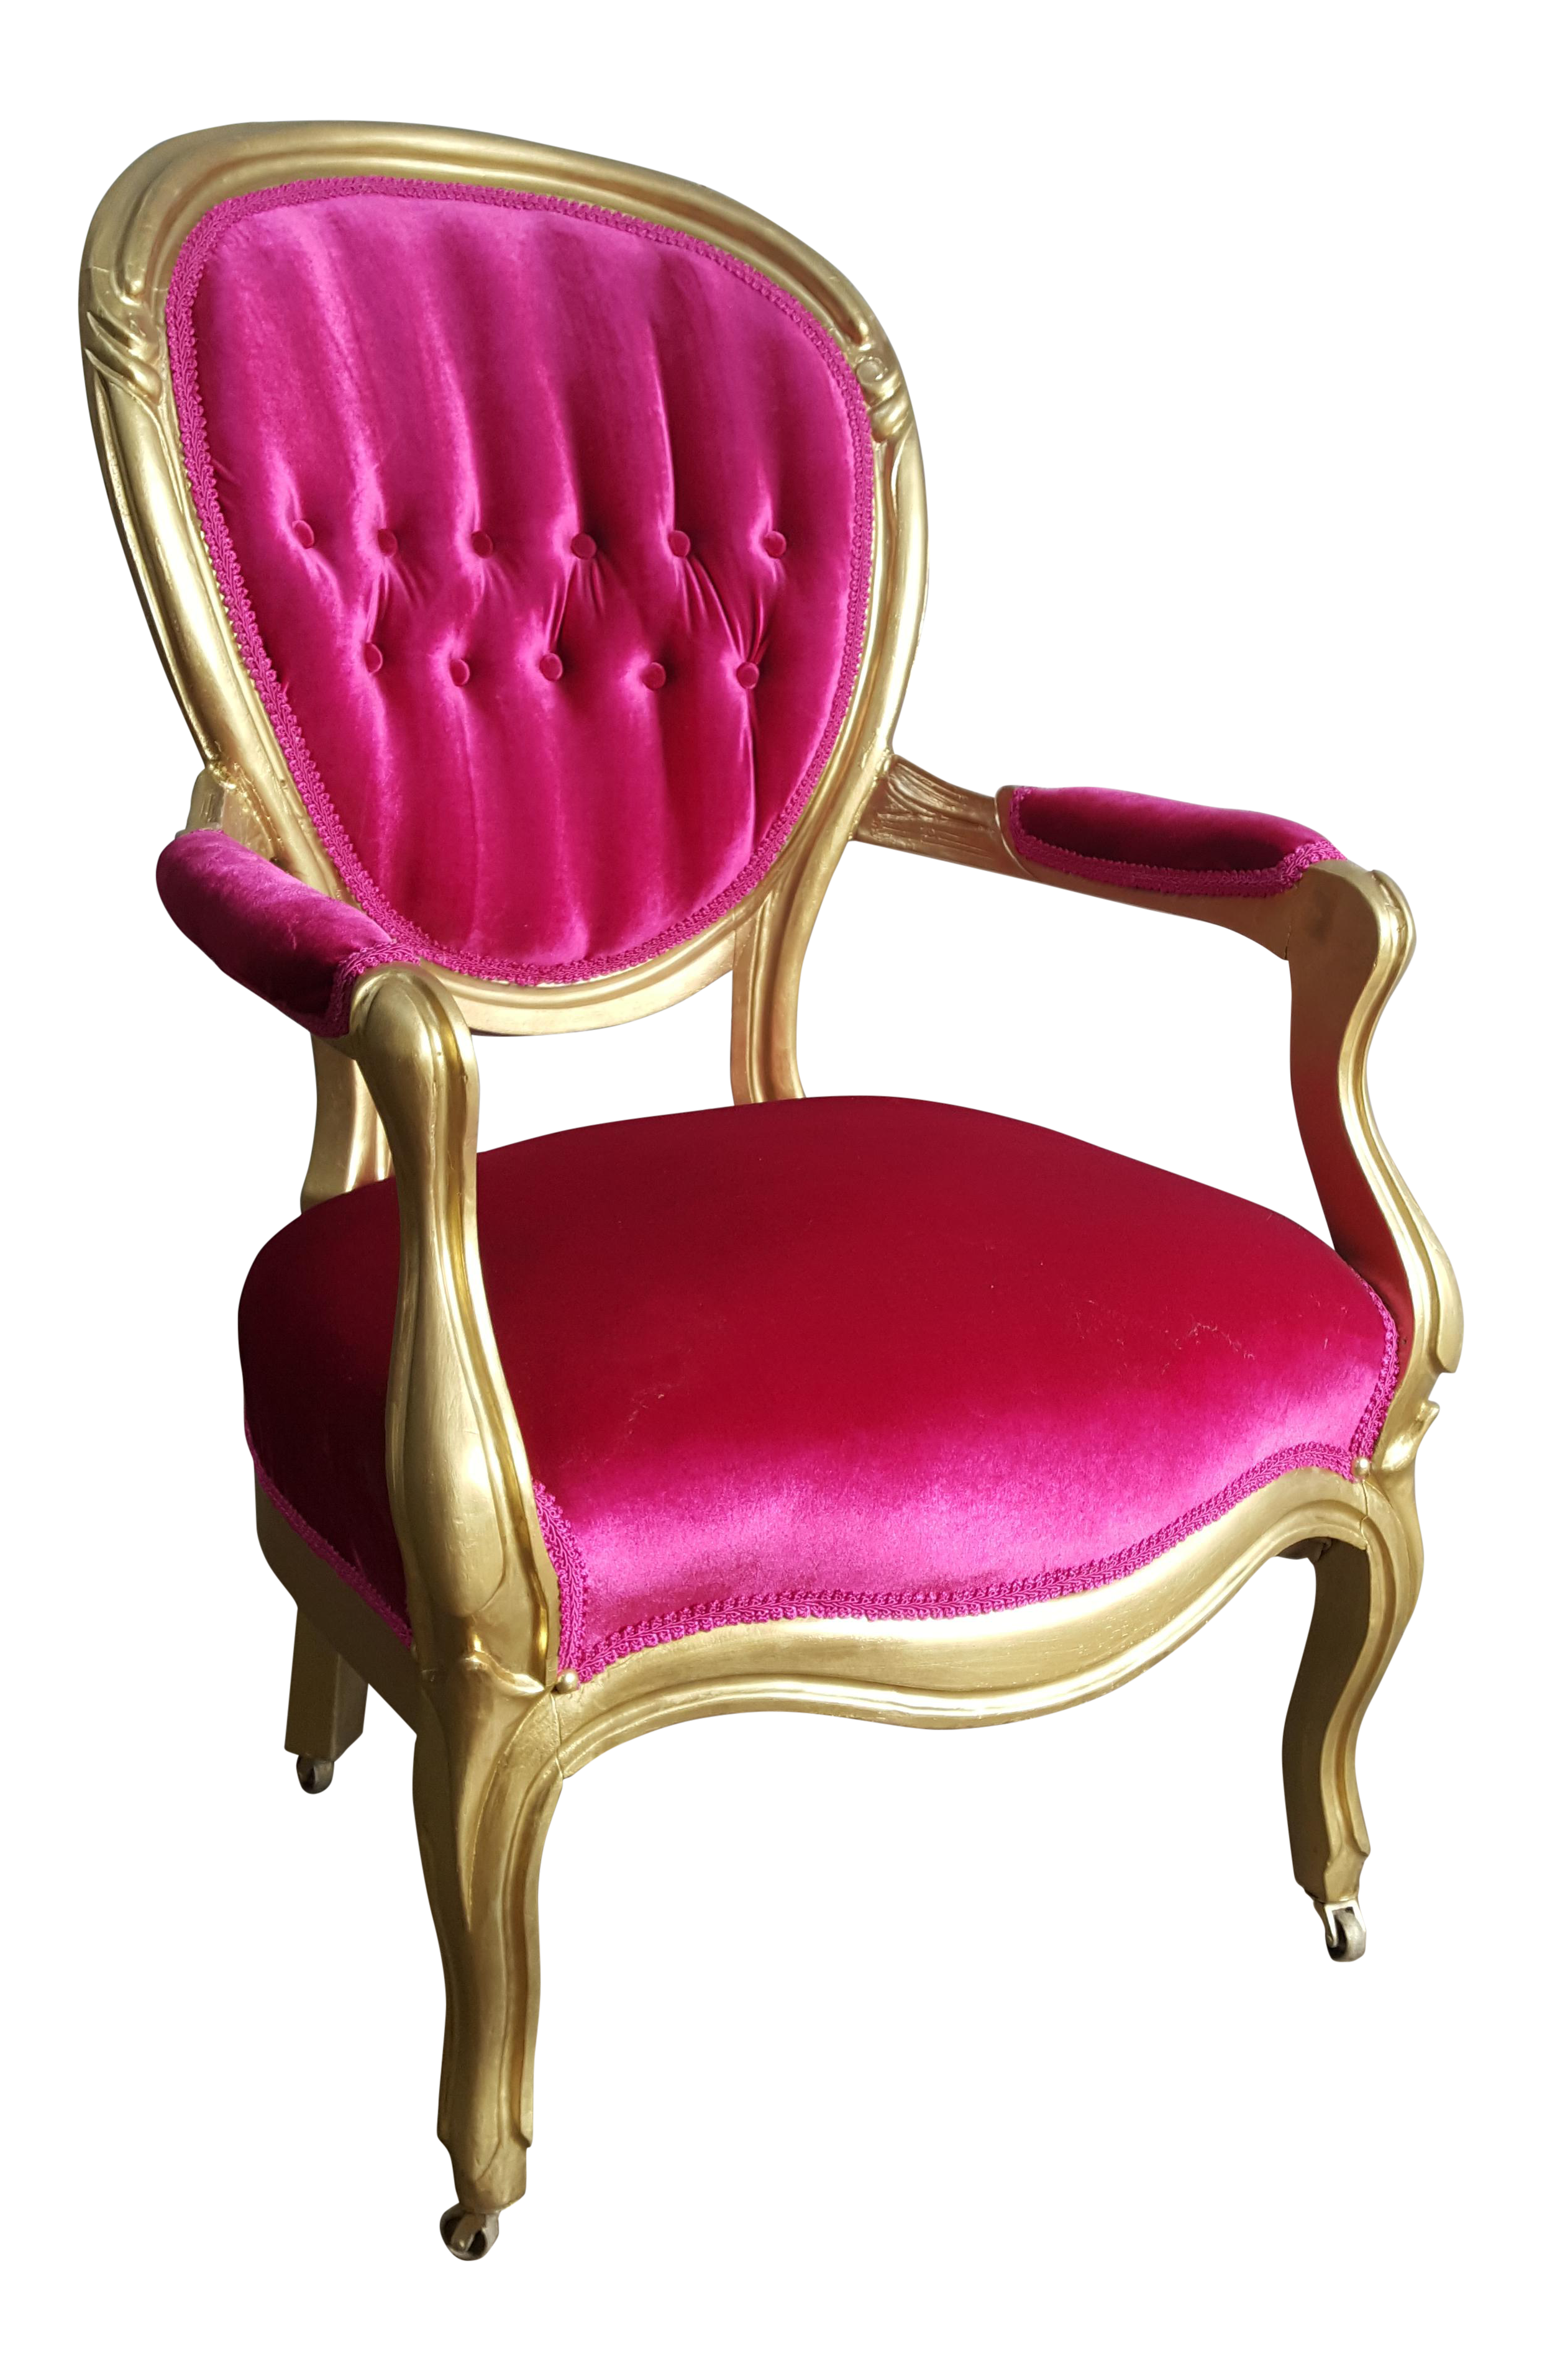 Antique velvet chair - Image Of Victorian Antique Pink Velvet And Gold Chair